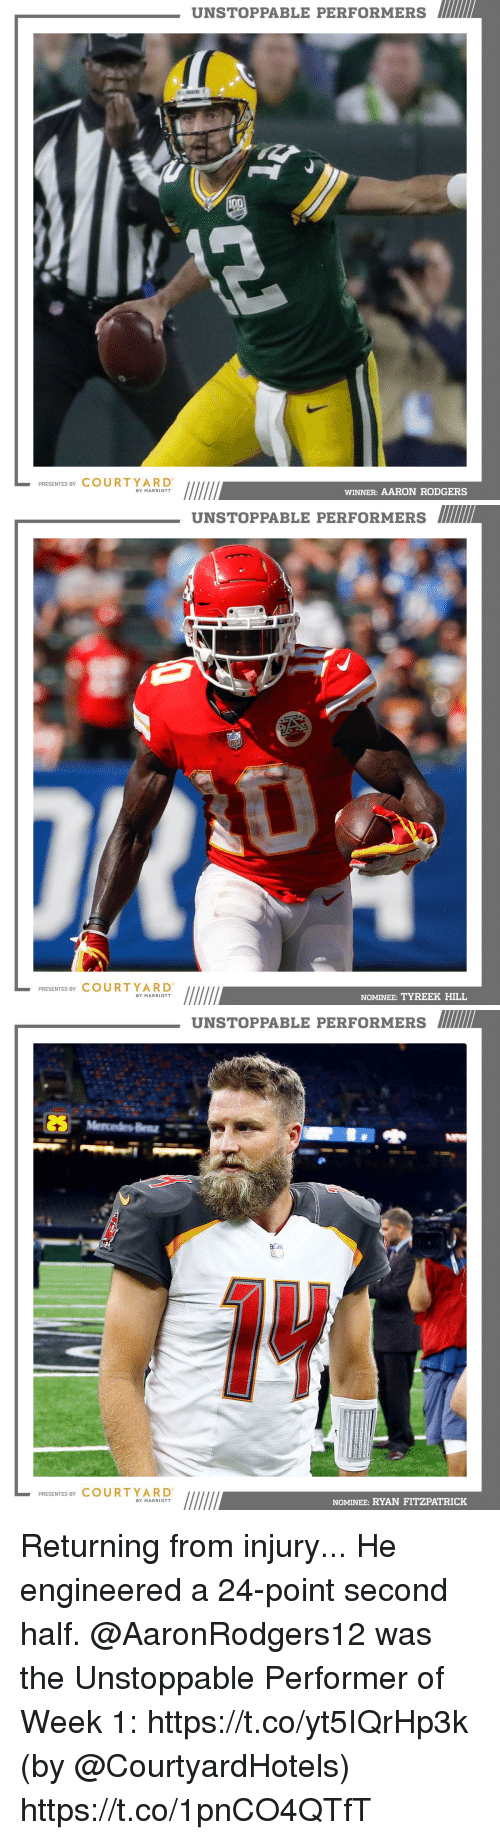 Ryan Fitzpatrick: UNSTOPPABLE PERFORMERS  PRESENTED BY COURTYARD  WINNER: AARON RODGERS  BY MARRIOTT   UNSTOPPABLE PERFORMERS  PRESENTED BY COURT YARD  NOMINEE: TYREEK HILL  BY MARRIOTT   UNSTOPPABLE PERFORMERS  PRESENTED BY COURTYARD  NOMINEE: RYAN FITZPATRICK  BY MARRIOTT Returning from injury... He engineered a 24-point second half.  @AaronRodgers12 was the Unstoppable Performer of Week 1: https://t.co/yt5IQrHp3k (by @CourtyardHotels) https://t.co/1pnCO4QTfT